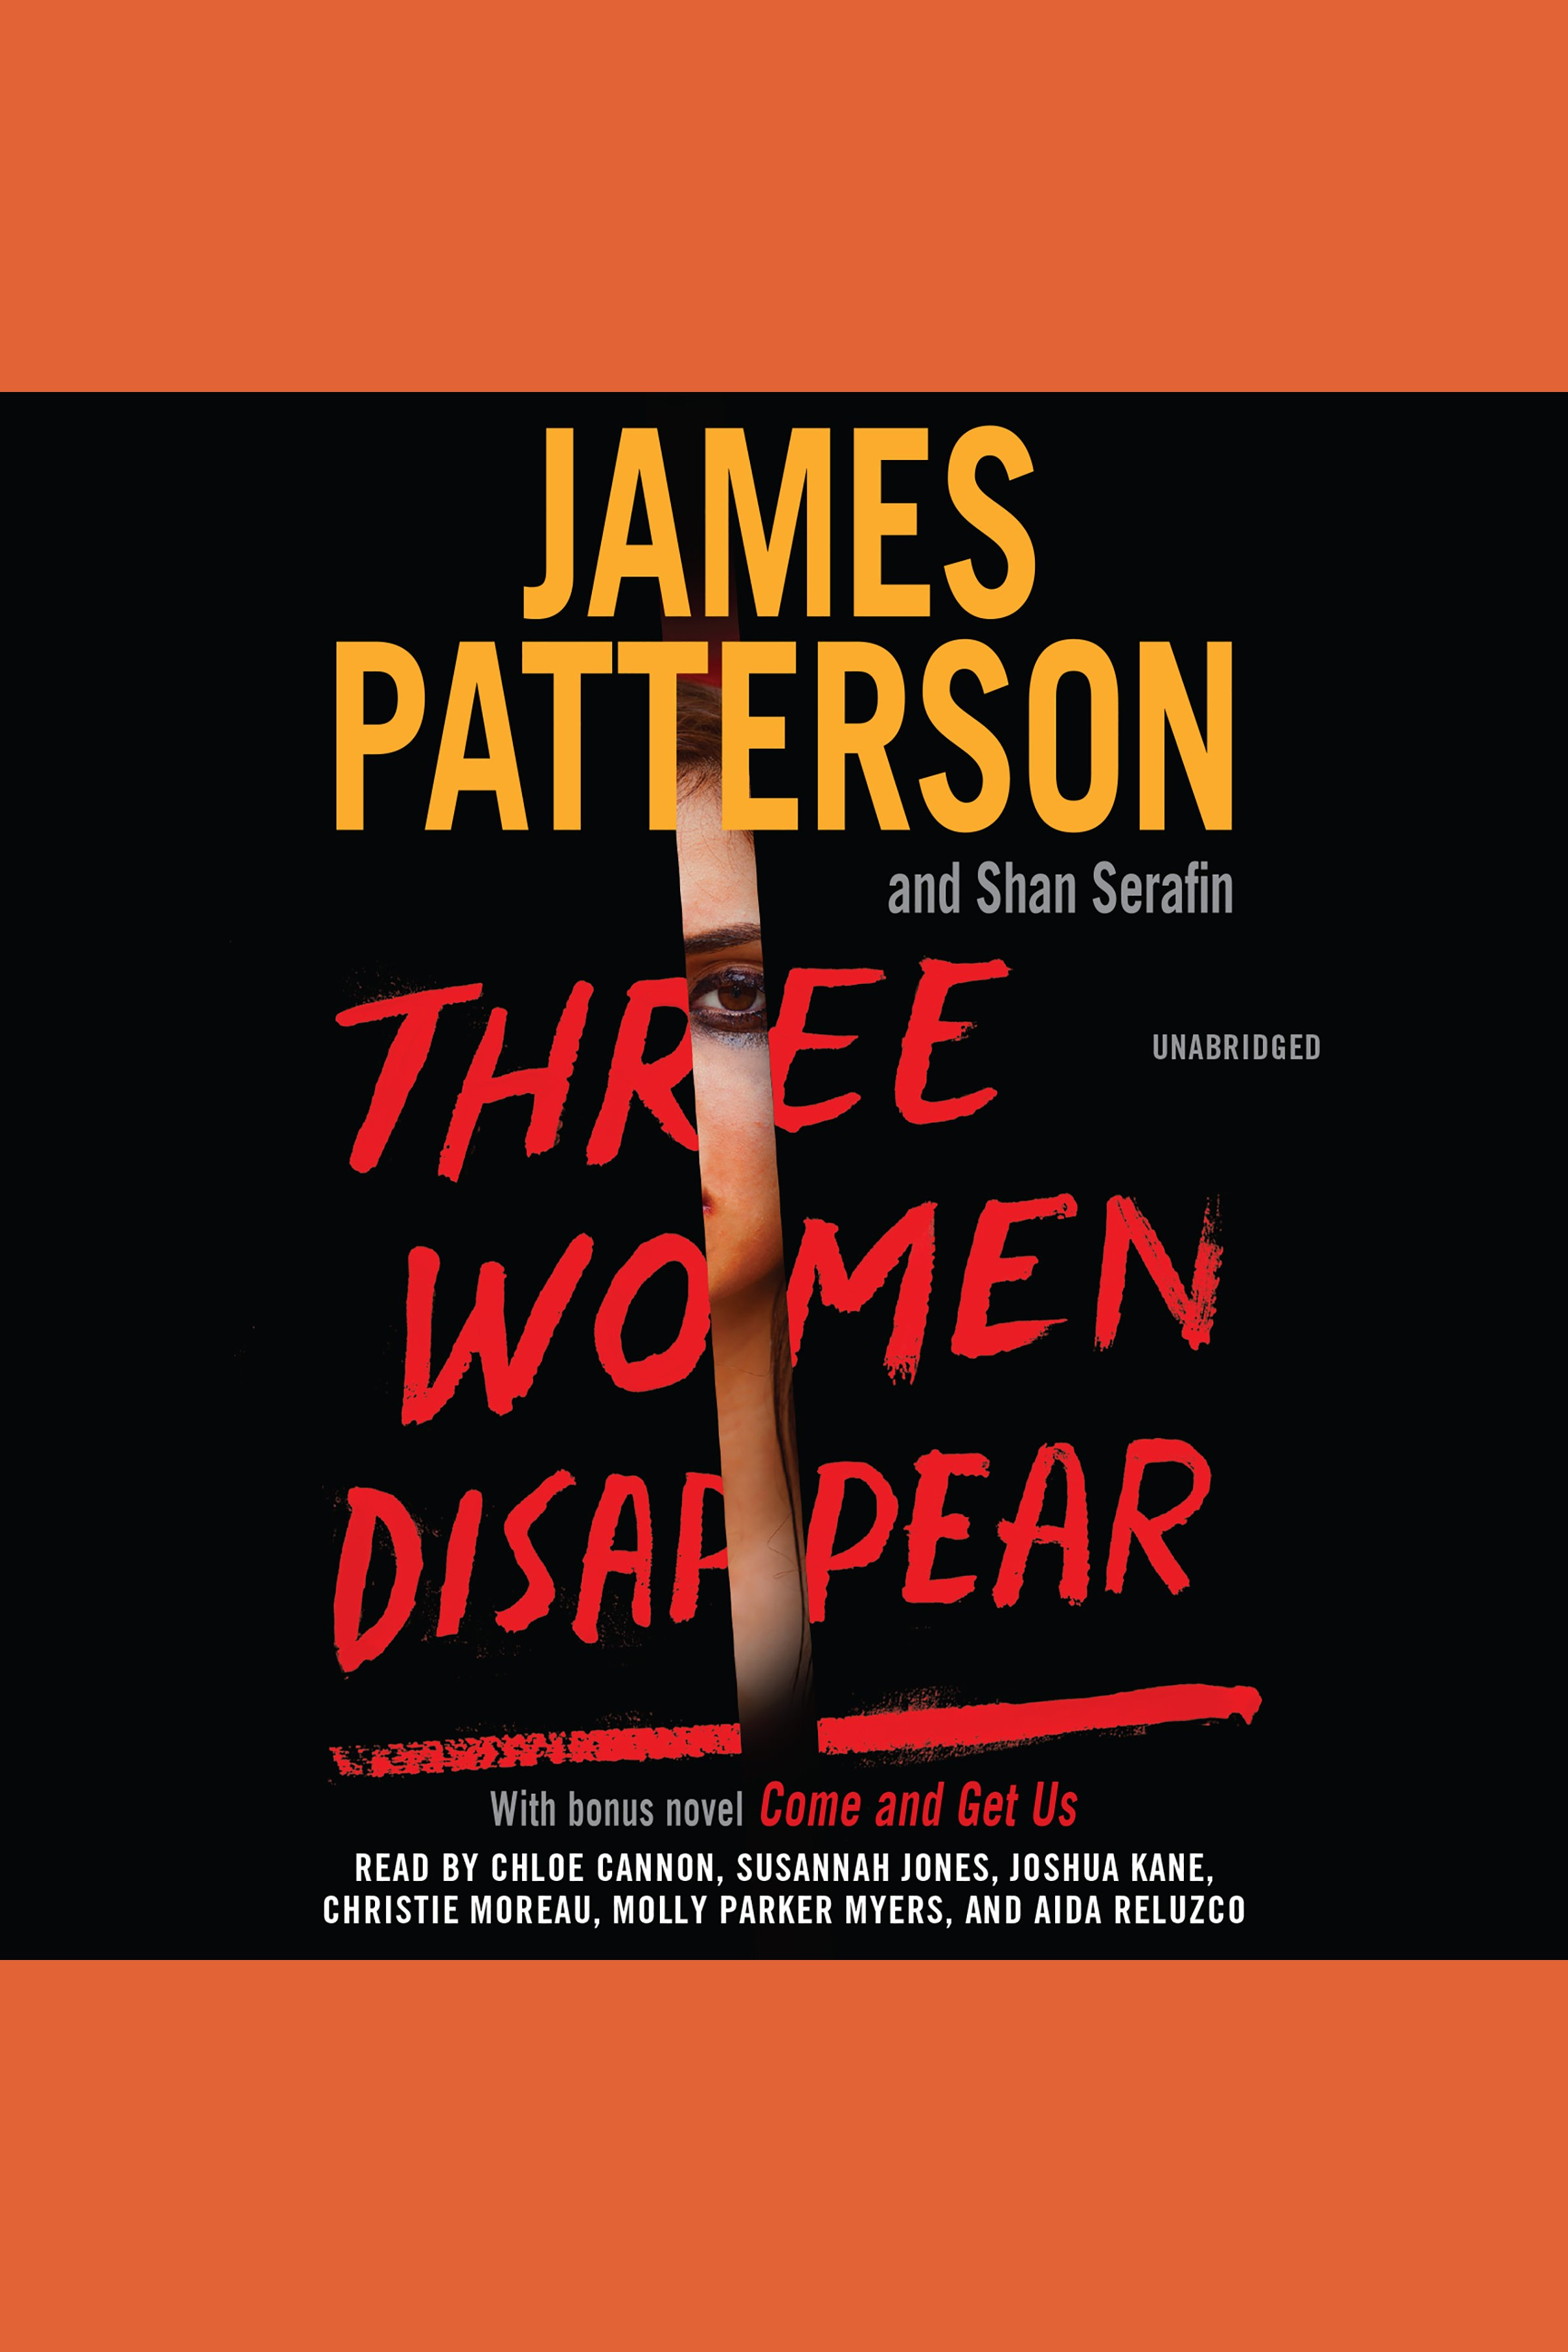 Cover Image of Three Women Disappear